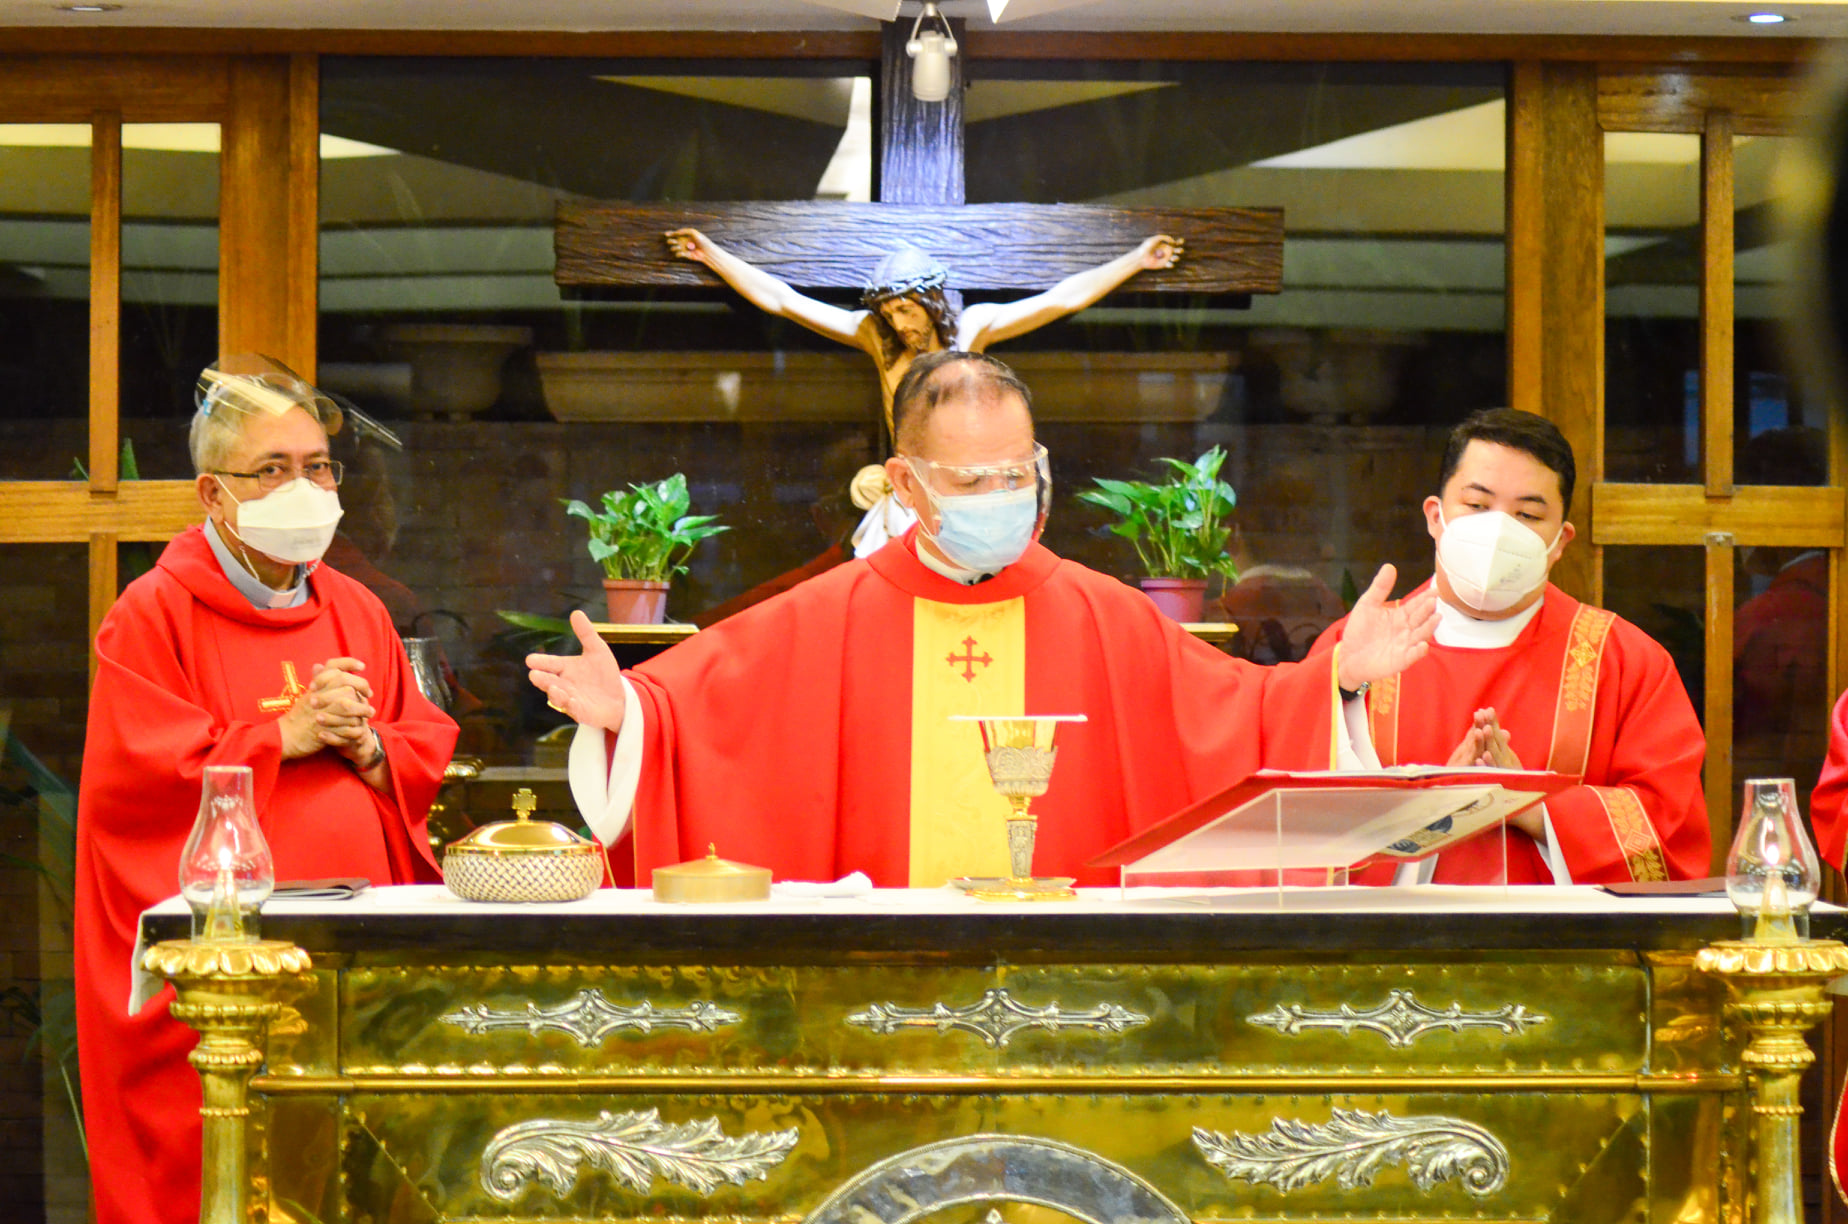 Archdiocese of Manila gears up to take on Pope Francis' challenge to Synodality